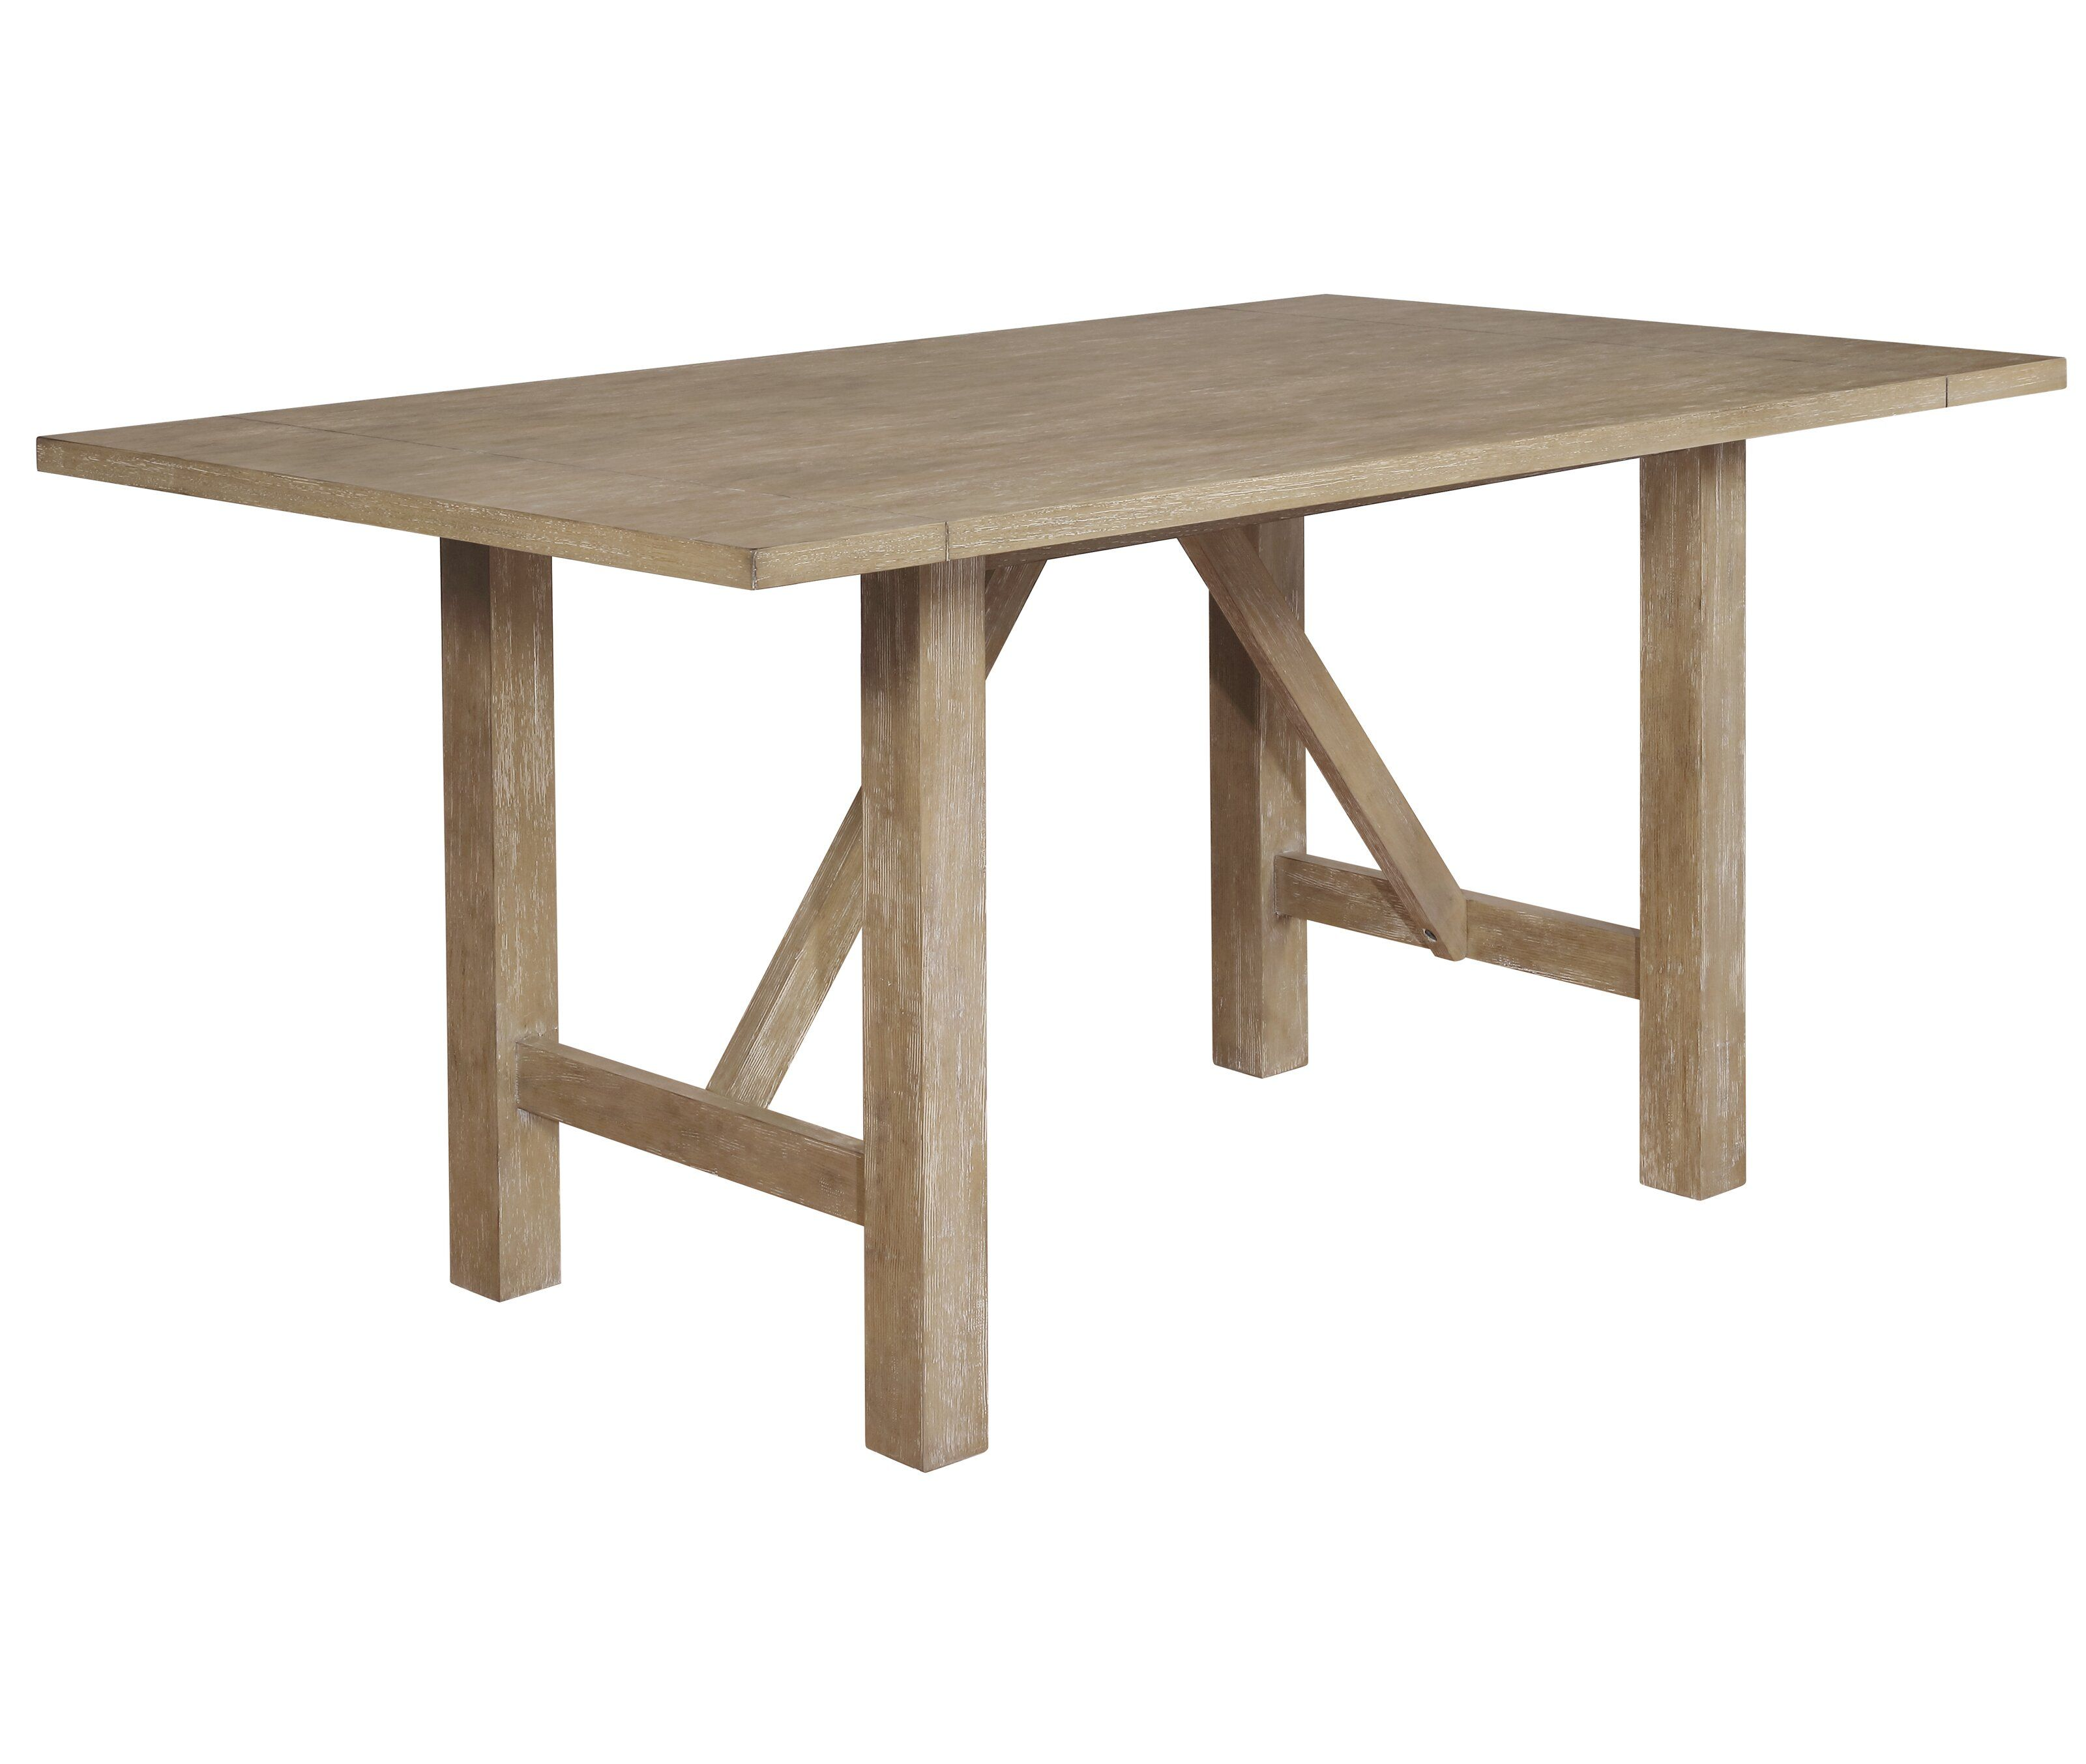 Upham Dining Table In 2021 Dining Table In Kitchen Solid Oak Dining Table Concrete Top Dining Table